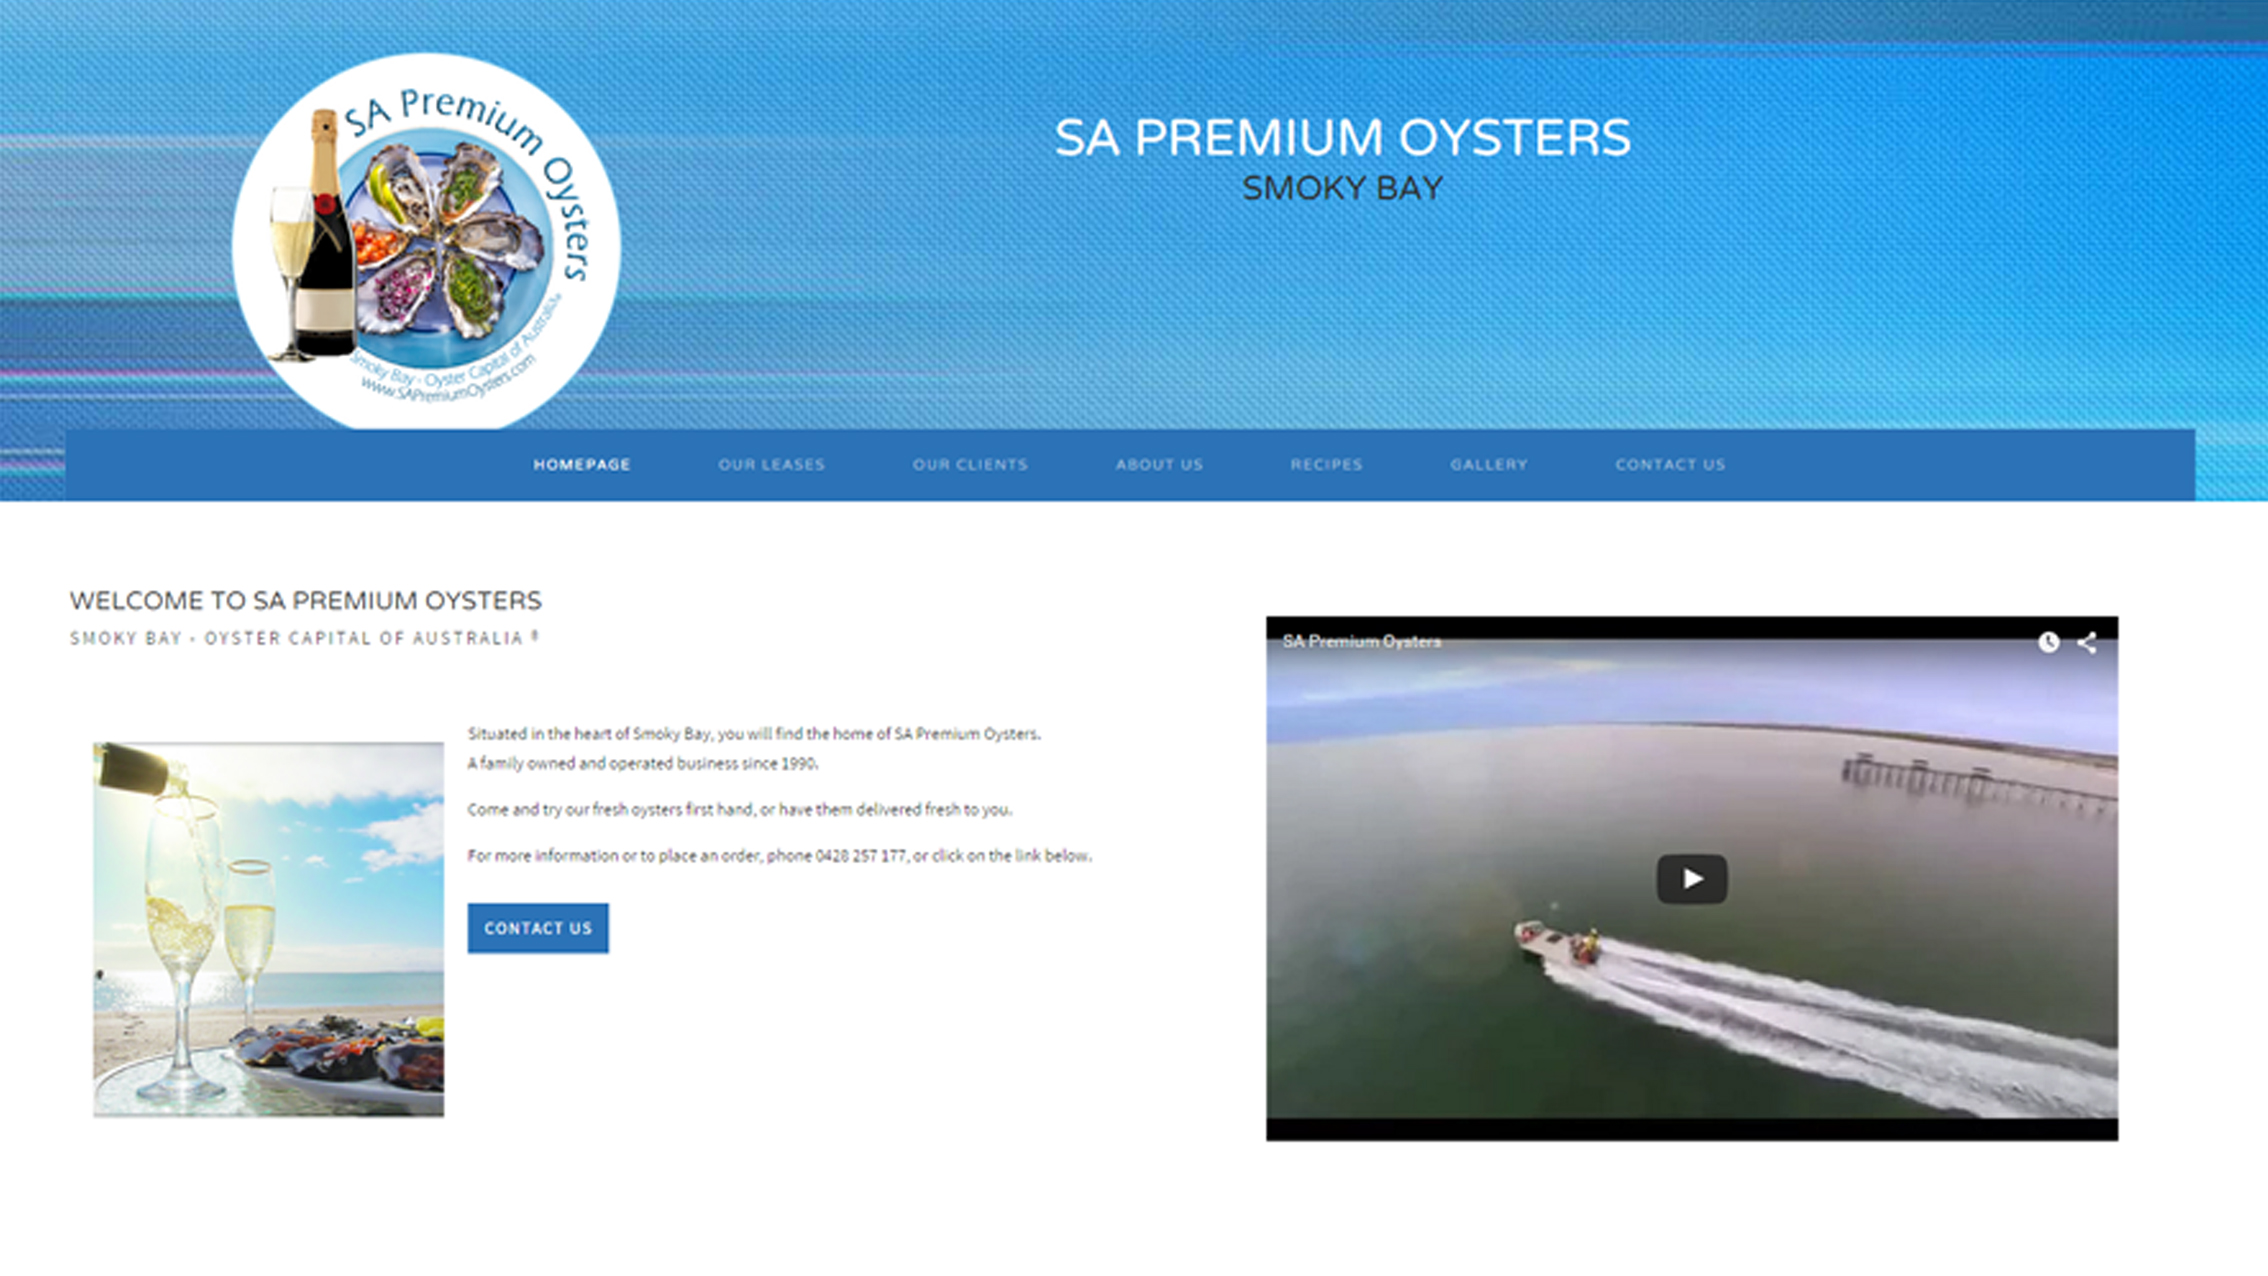 SA Premium Oysters Eye Dropper Designs - Adelaide Website Agency